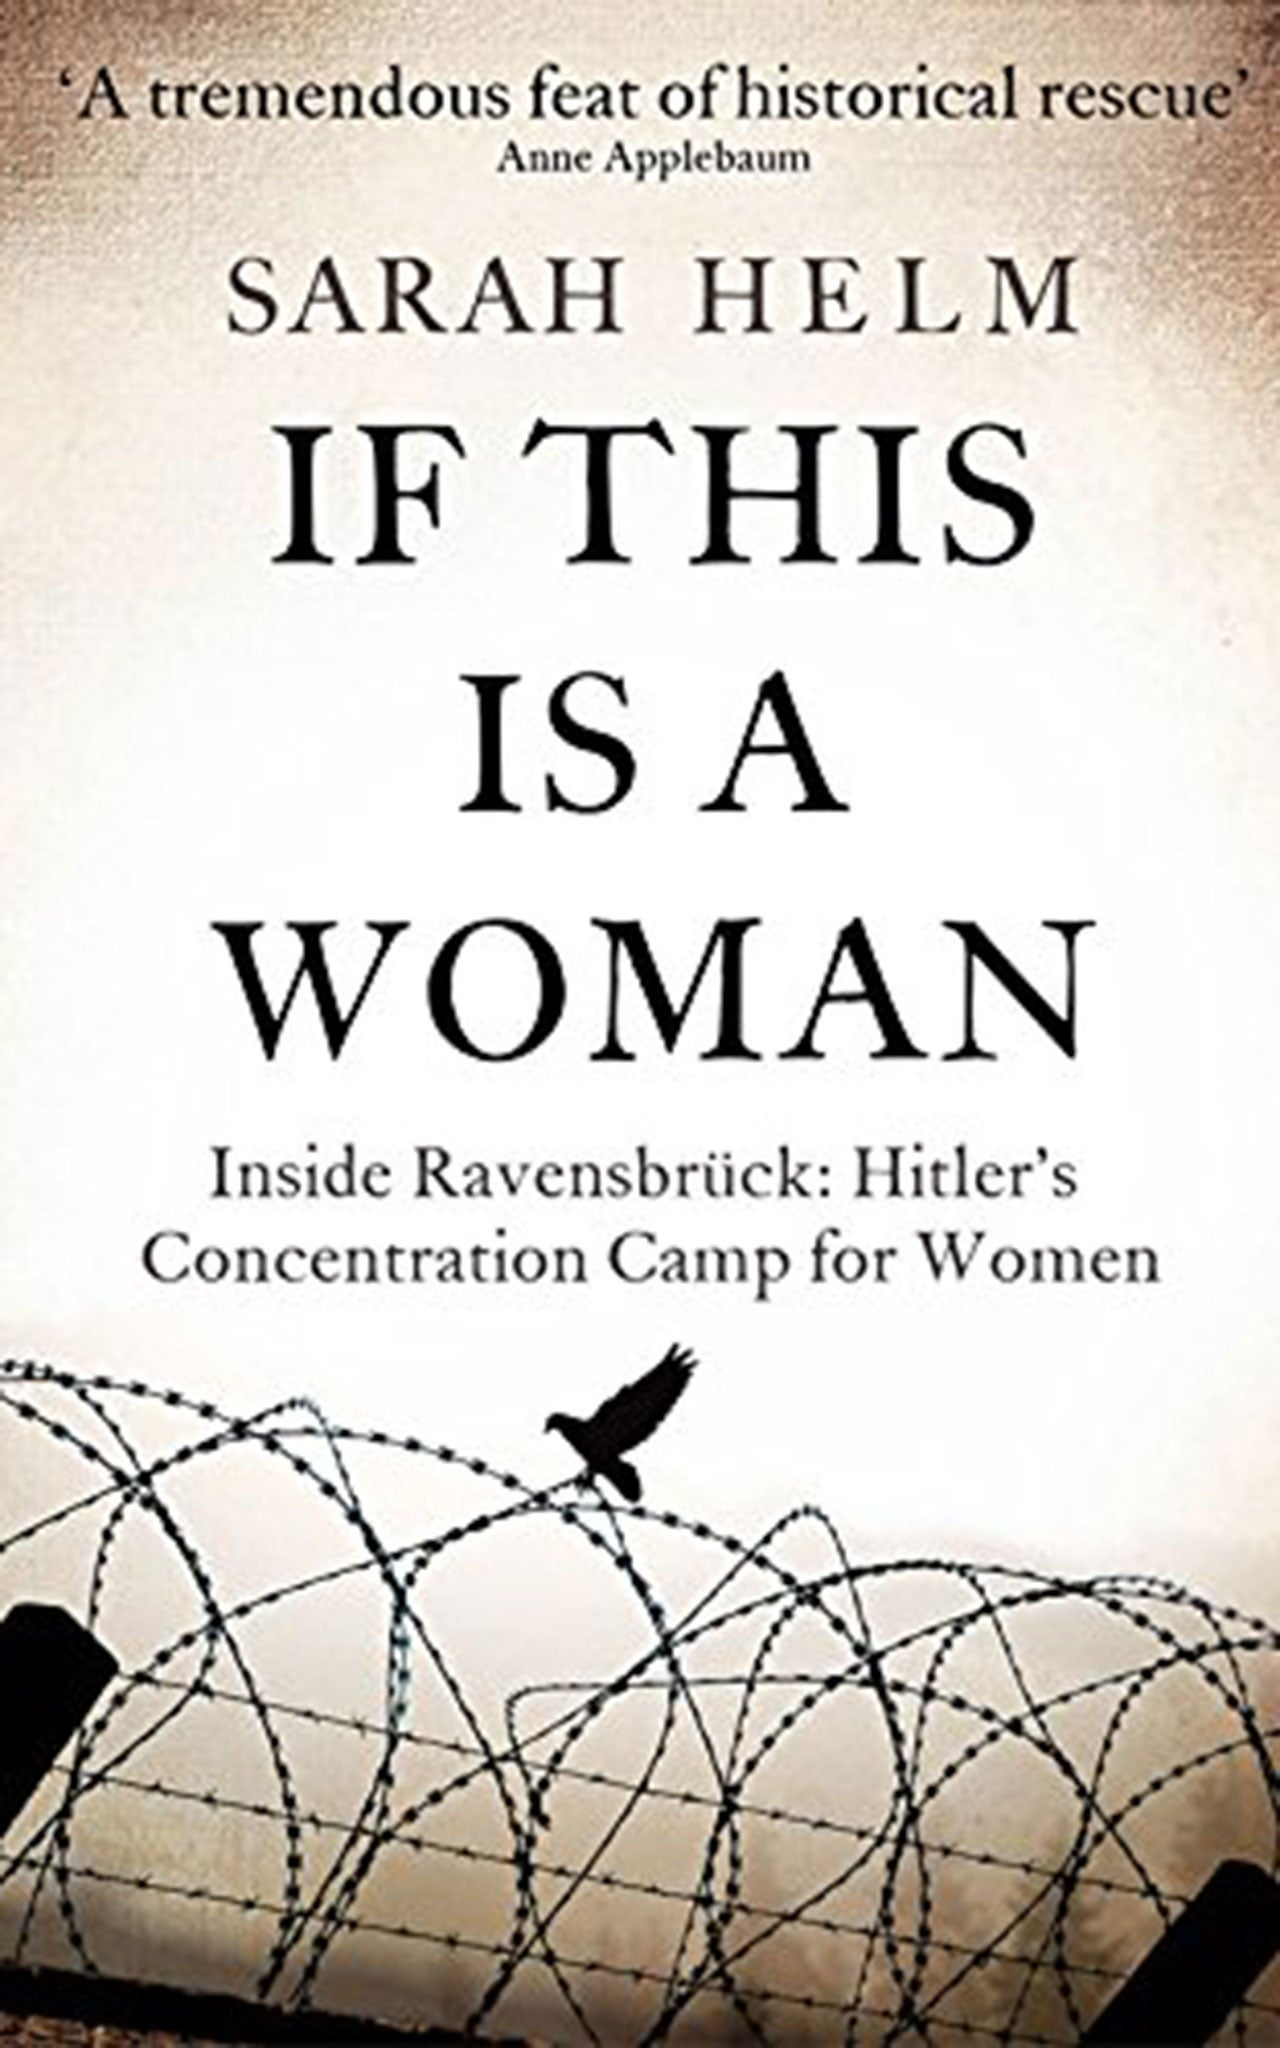 If This is a Woman: Inside Ravensbrück: Hitler's Concentration Camp For Women by Sarah Helm, book review: Survivors tell chilling story